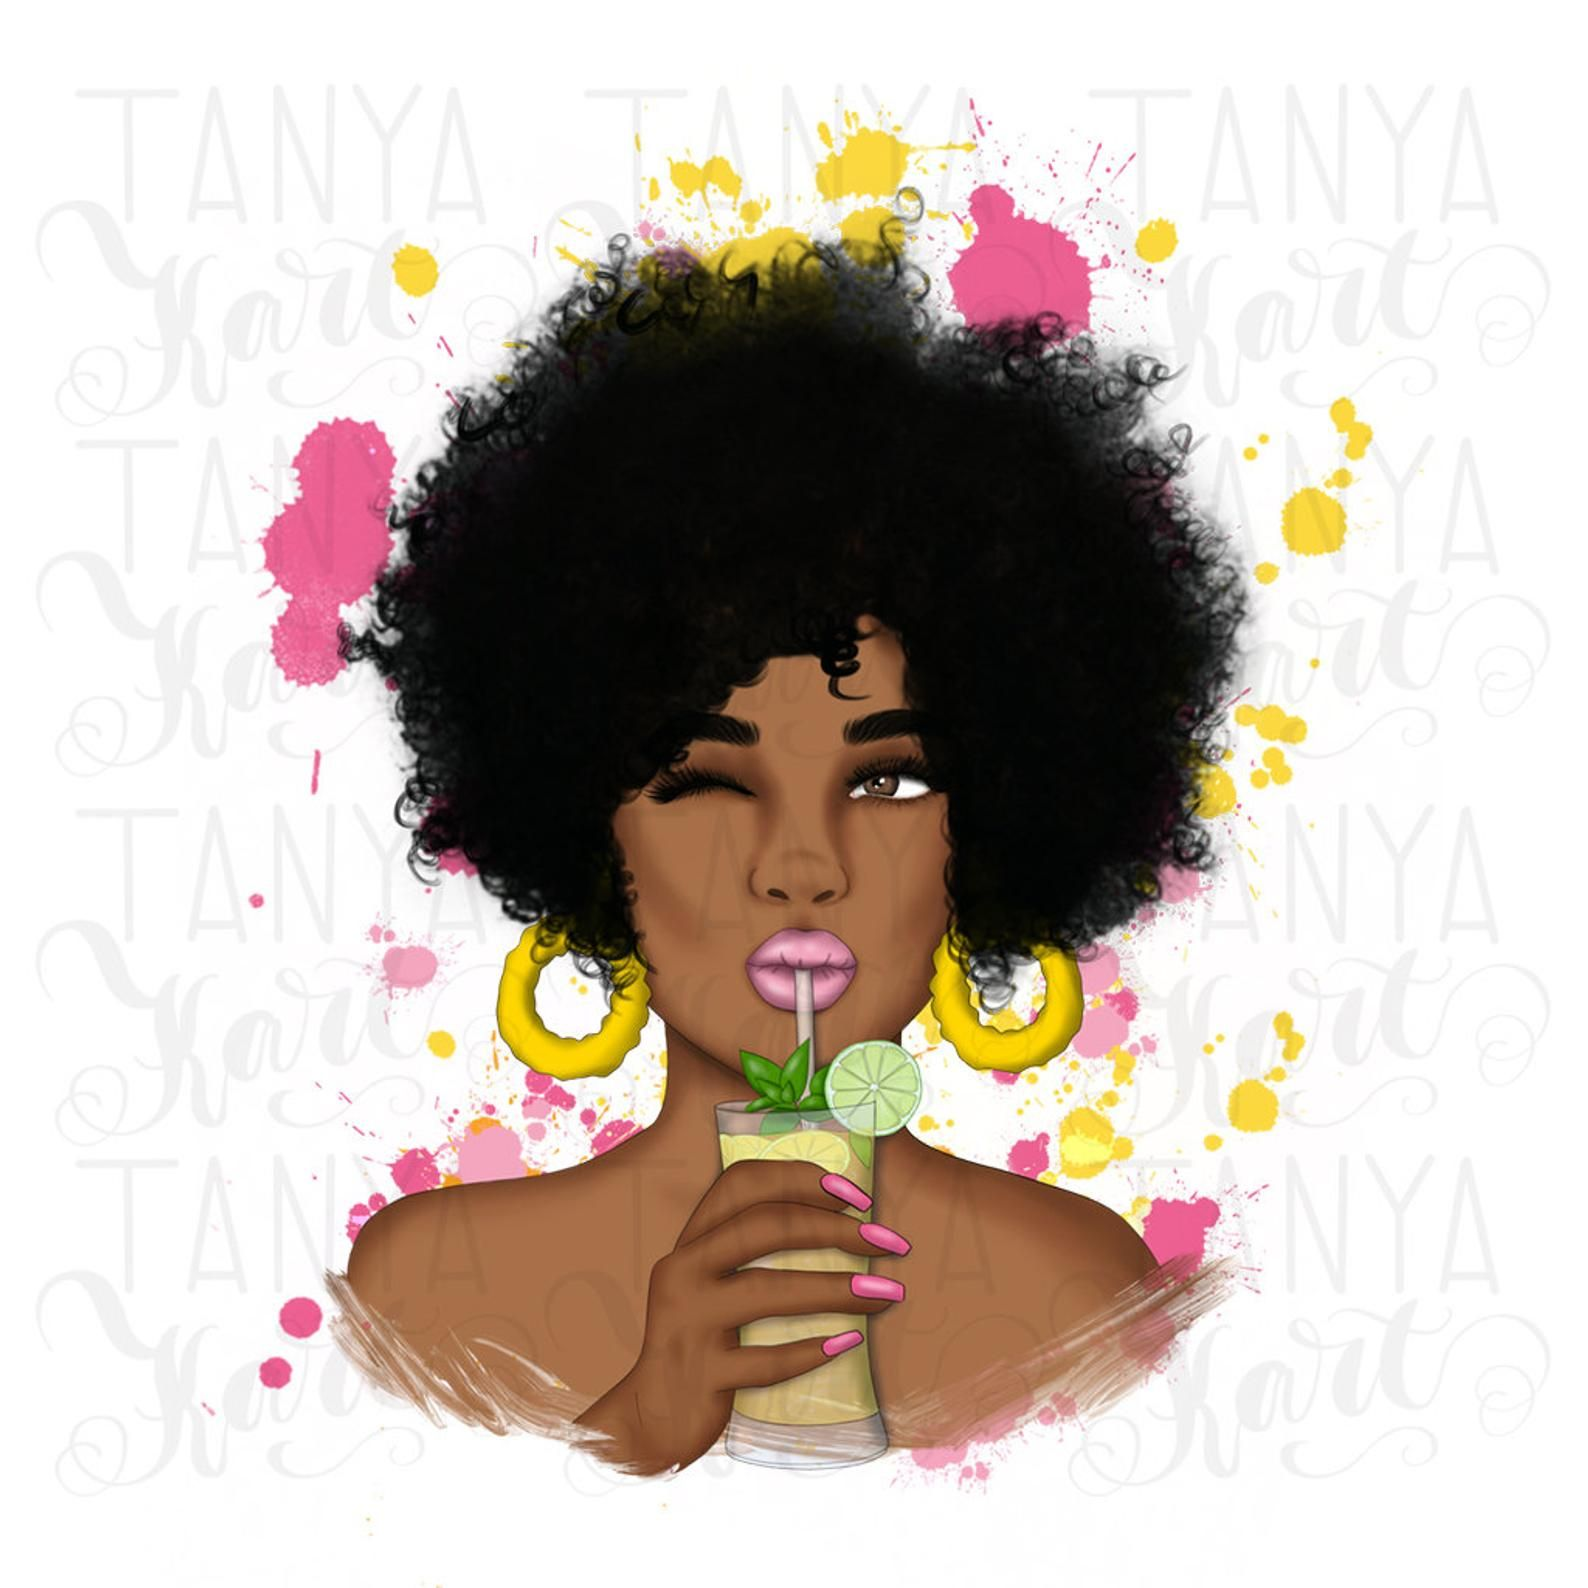 Sublimation Png Afro Woman Sublimation Designs Digital Etsy In 2021 Afro Women African Image Afro Emoji